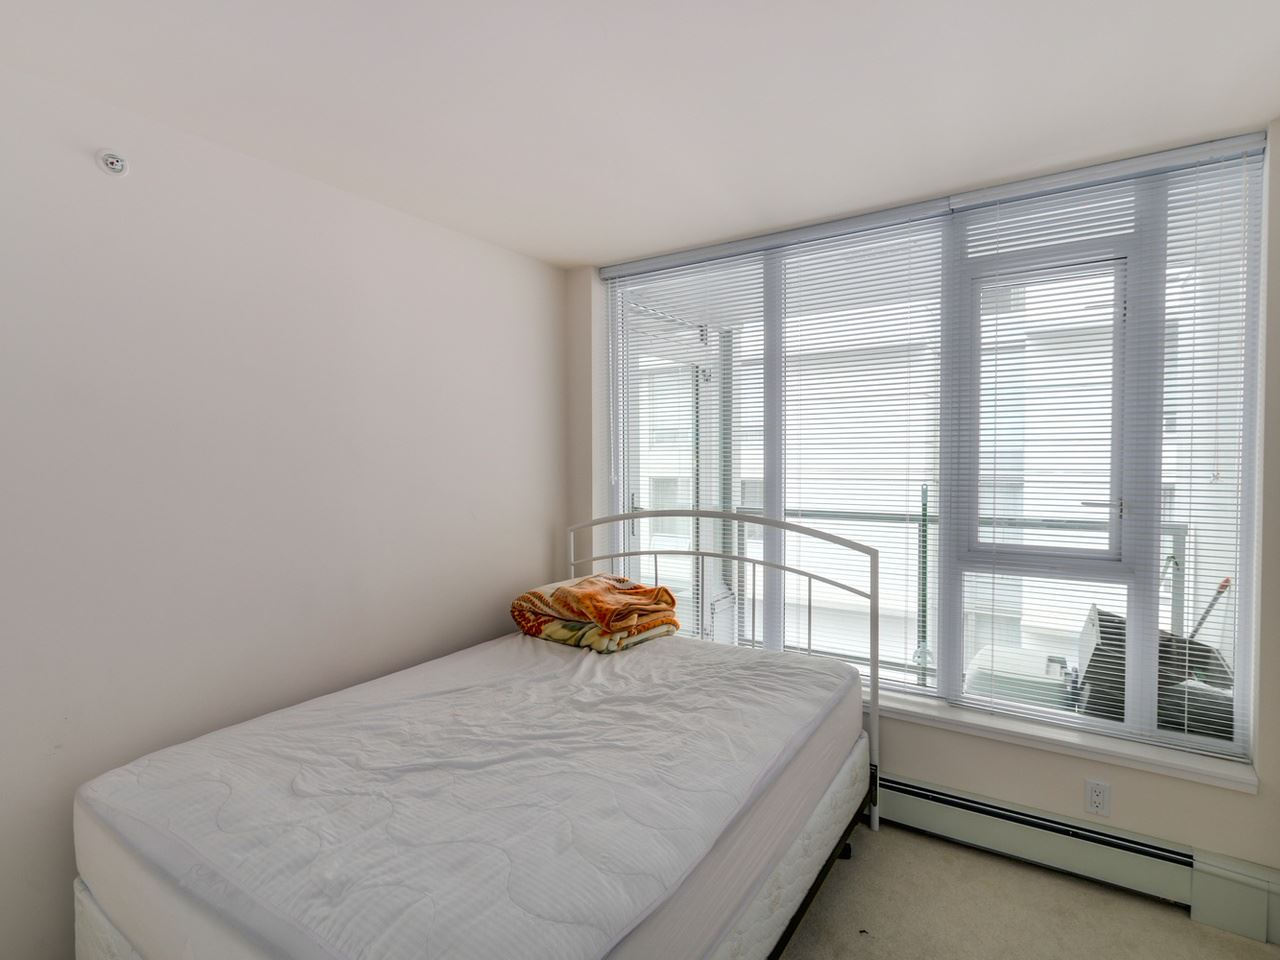 "Photo 15: 802 1887 CROWE Street in Vancouver: False Creek Condo for sale in ""PINNACLE ON FALSE CREEK"" (Vancouver West)  : MLS® # R2044450"